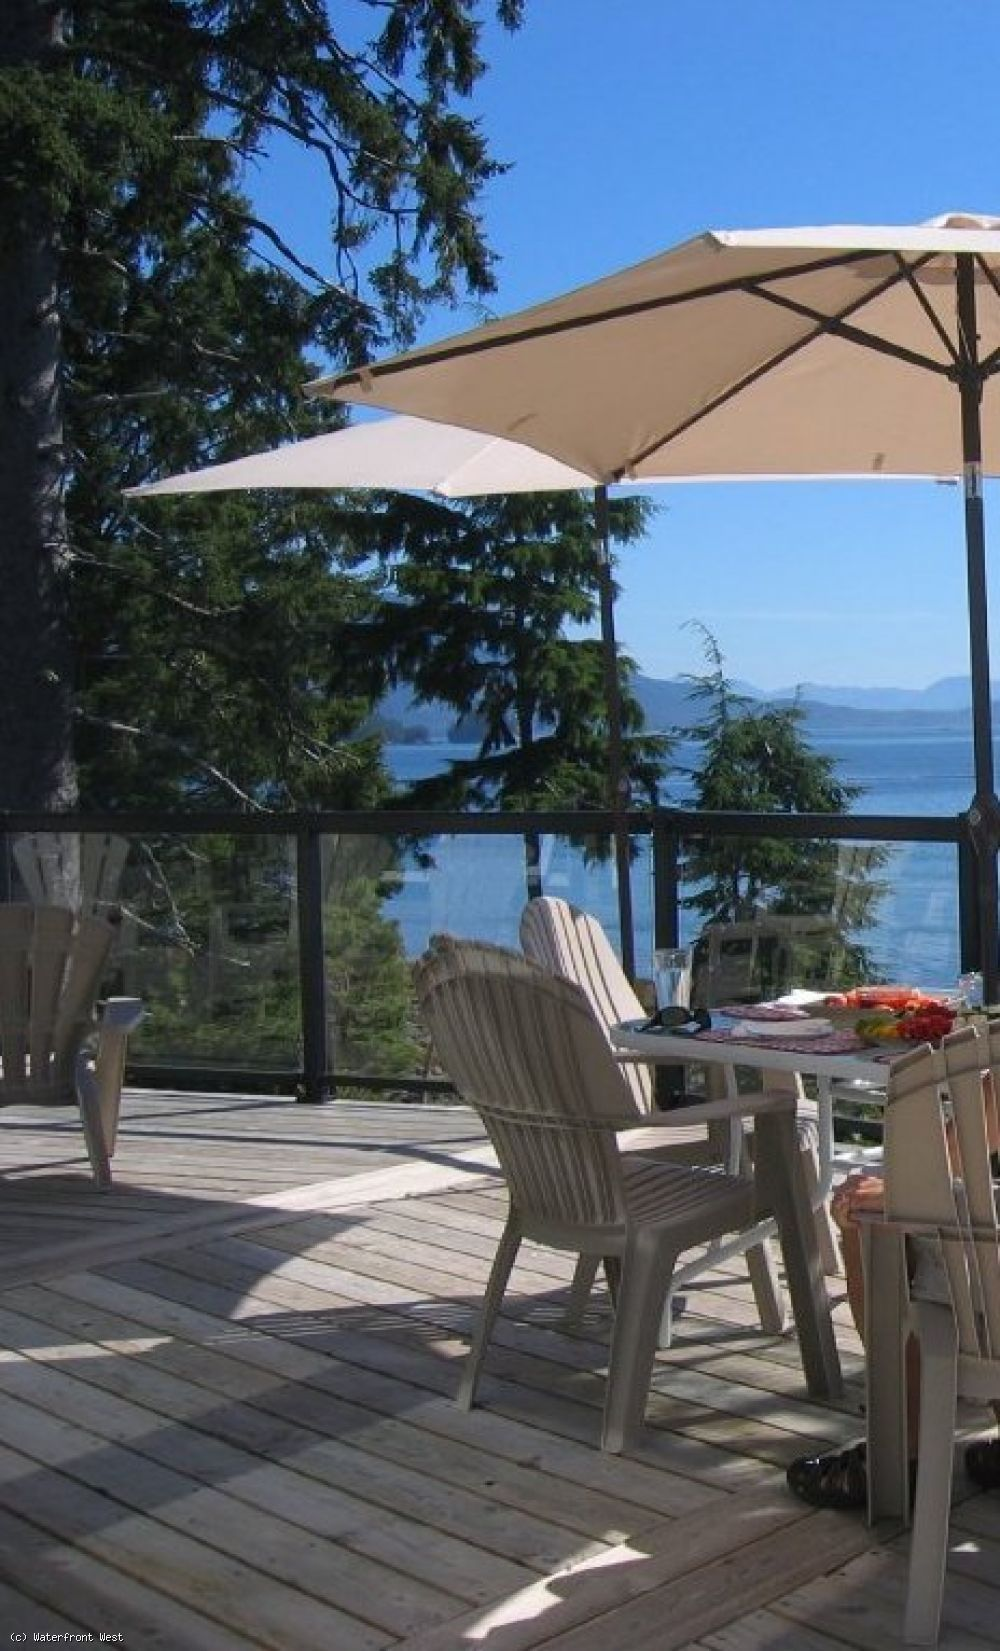 SOLD! Idyllic Oceanfront Turn-Key Beach House for Sale near Ucluelet